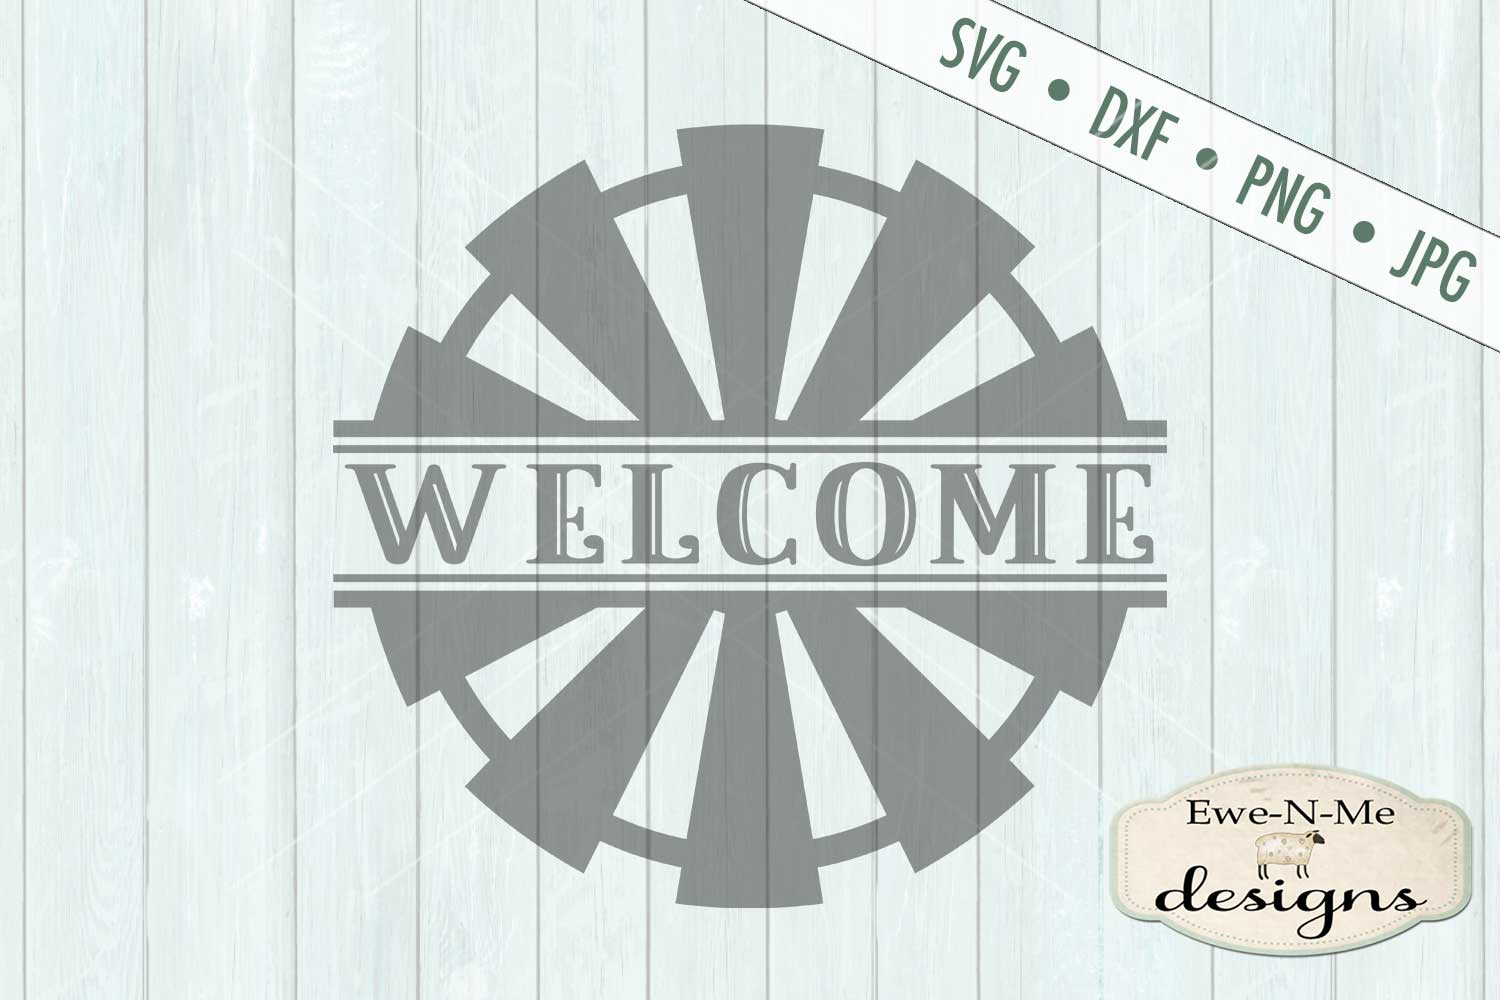 Split Windmill Welcome - Farm Rustic - SVG DXF Files example image 2